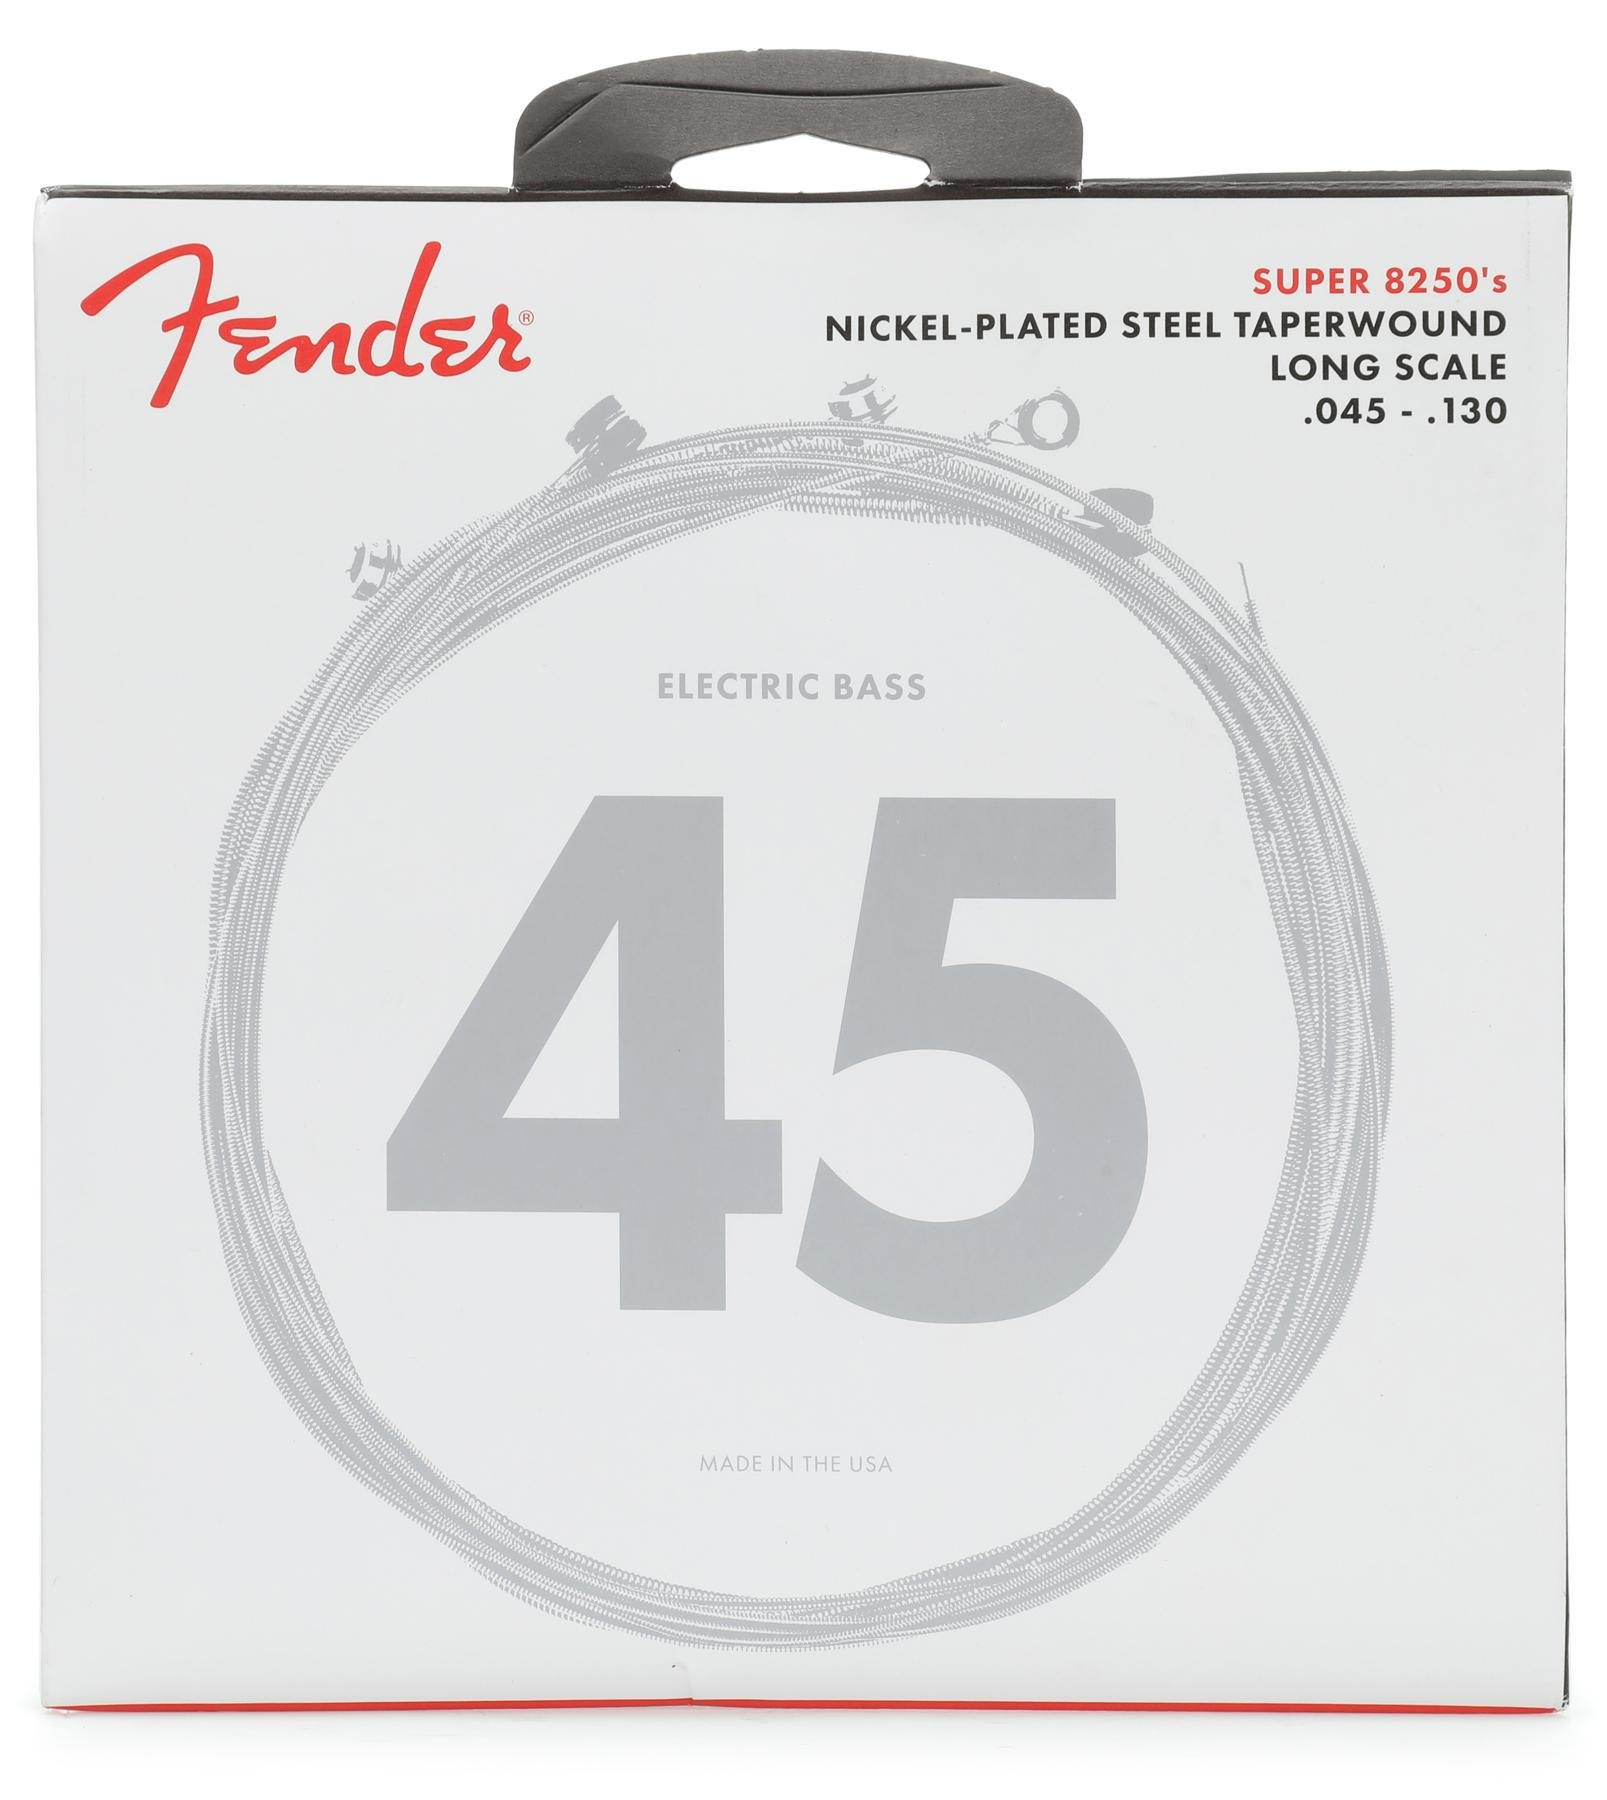 Fender 82505M Taperwound Electric Bass Strings Long Scale 5-STRING MEDIUM 45-130